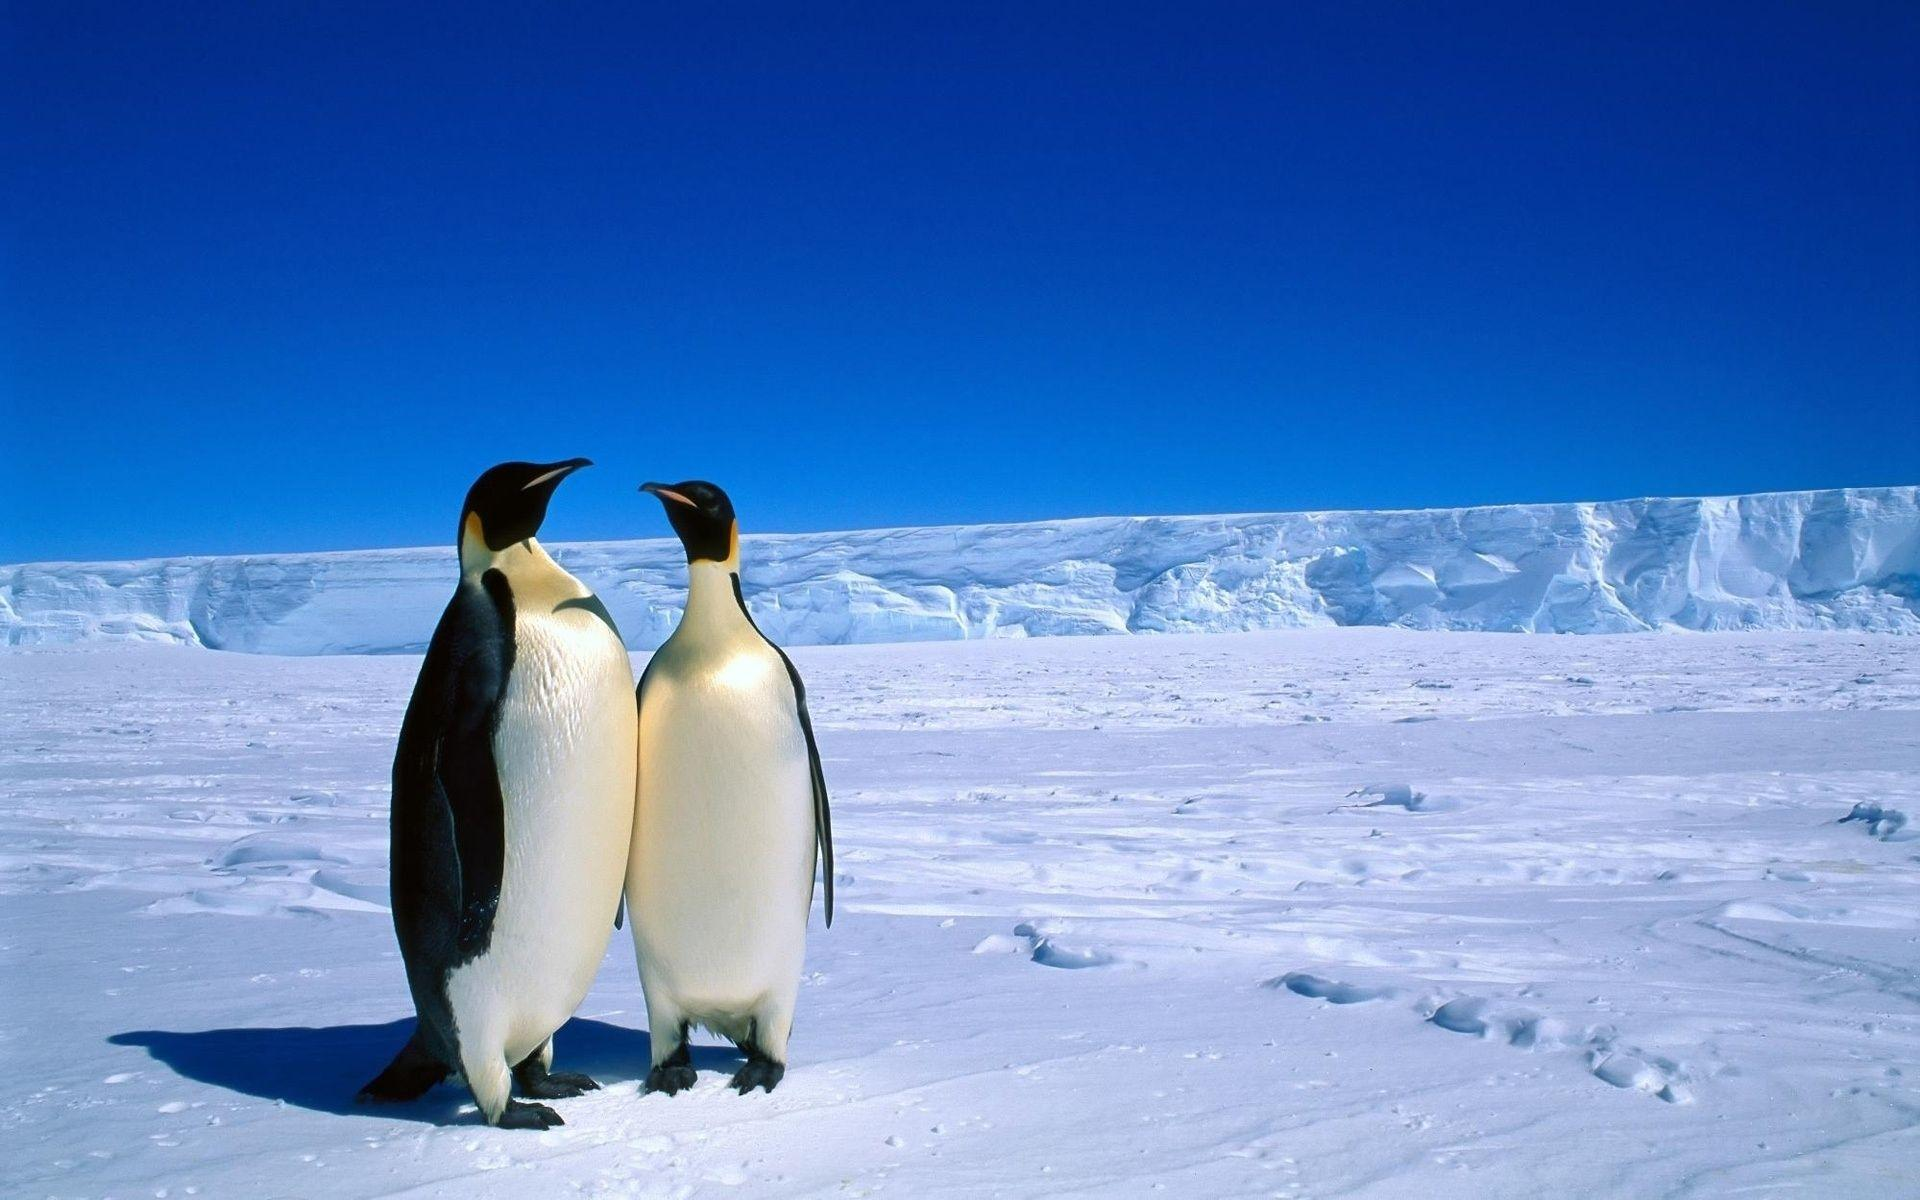 Adorable Antarctica Wallpapers 28849 1920x1200 px ~ HDWallSource